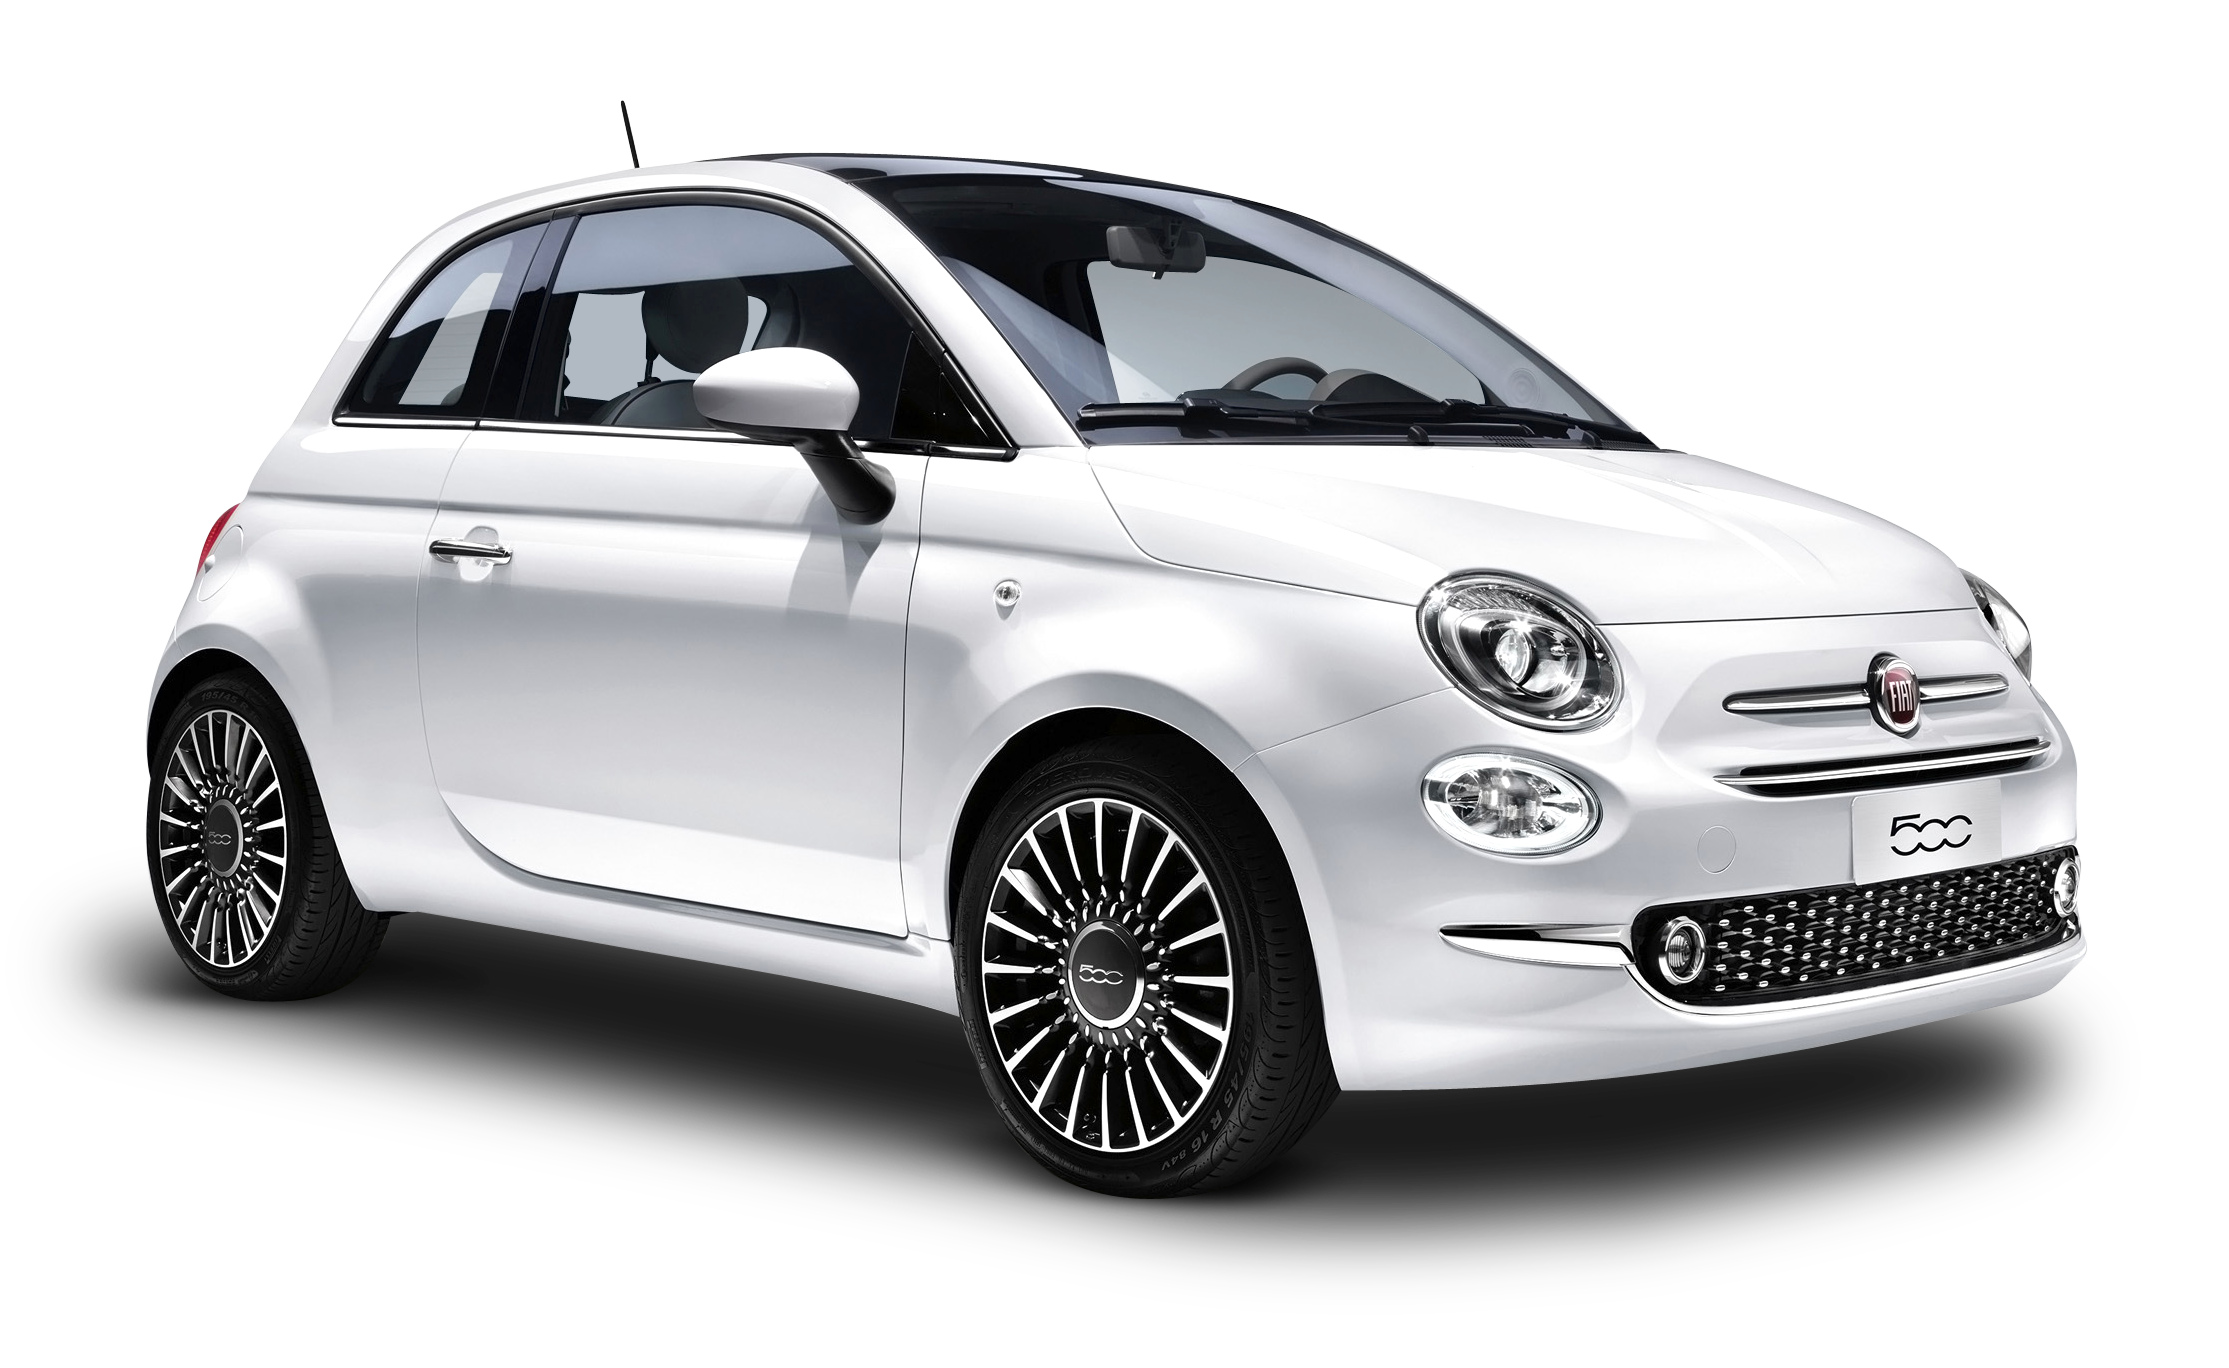 White FIAT 500 Car PNG Image.